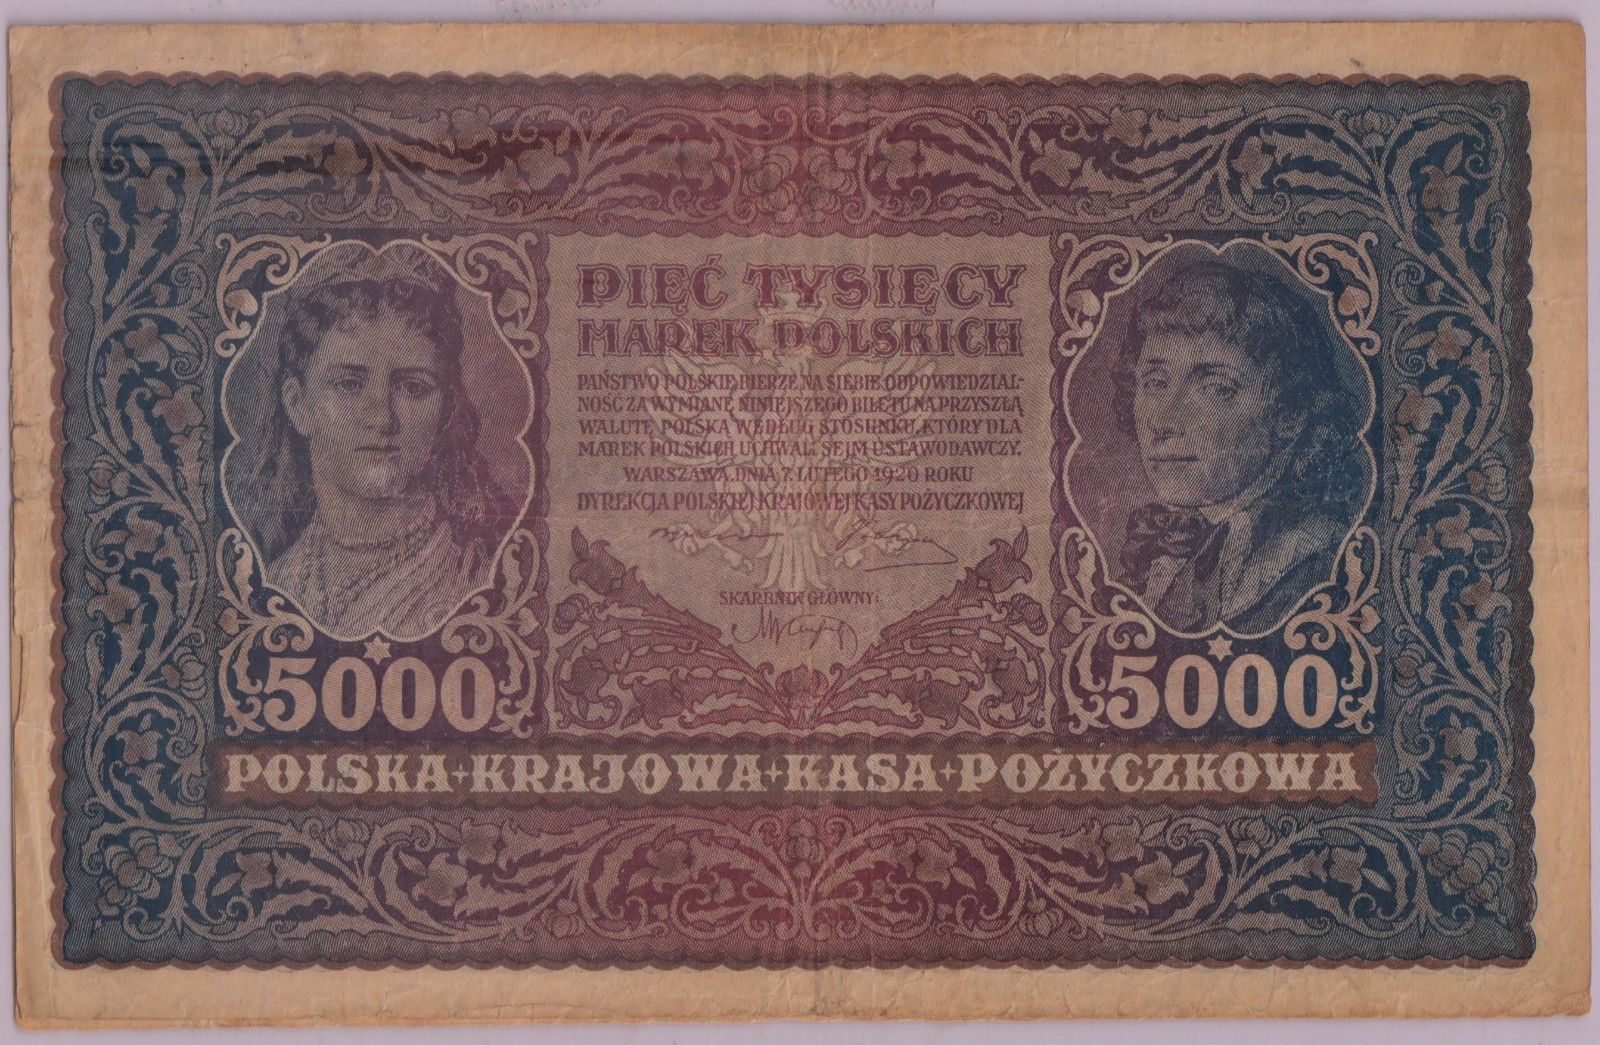 Poland - 5000 marek 1919 currency note ( large size)